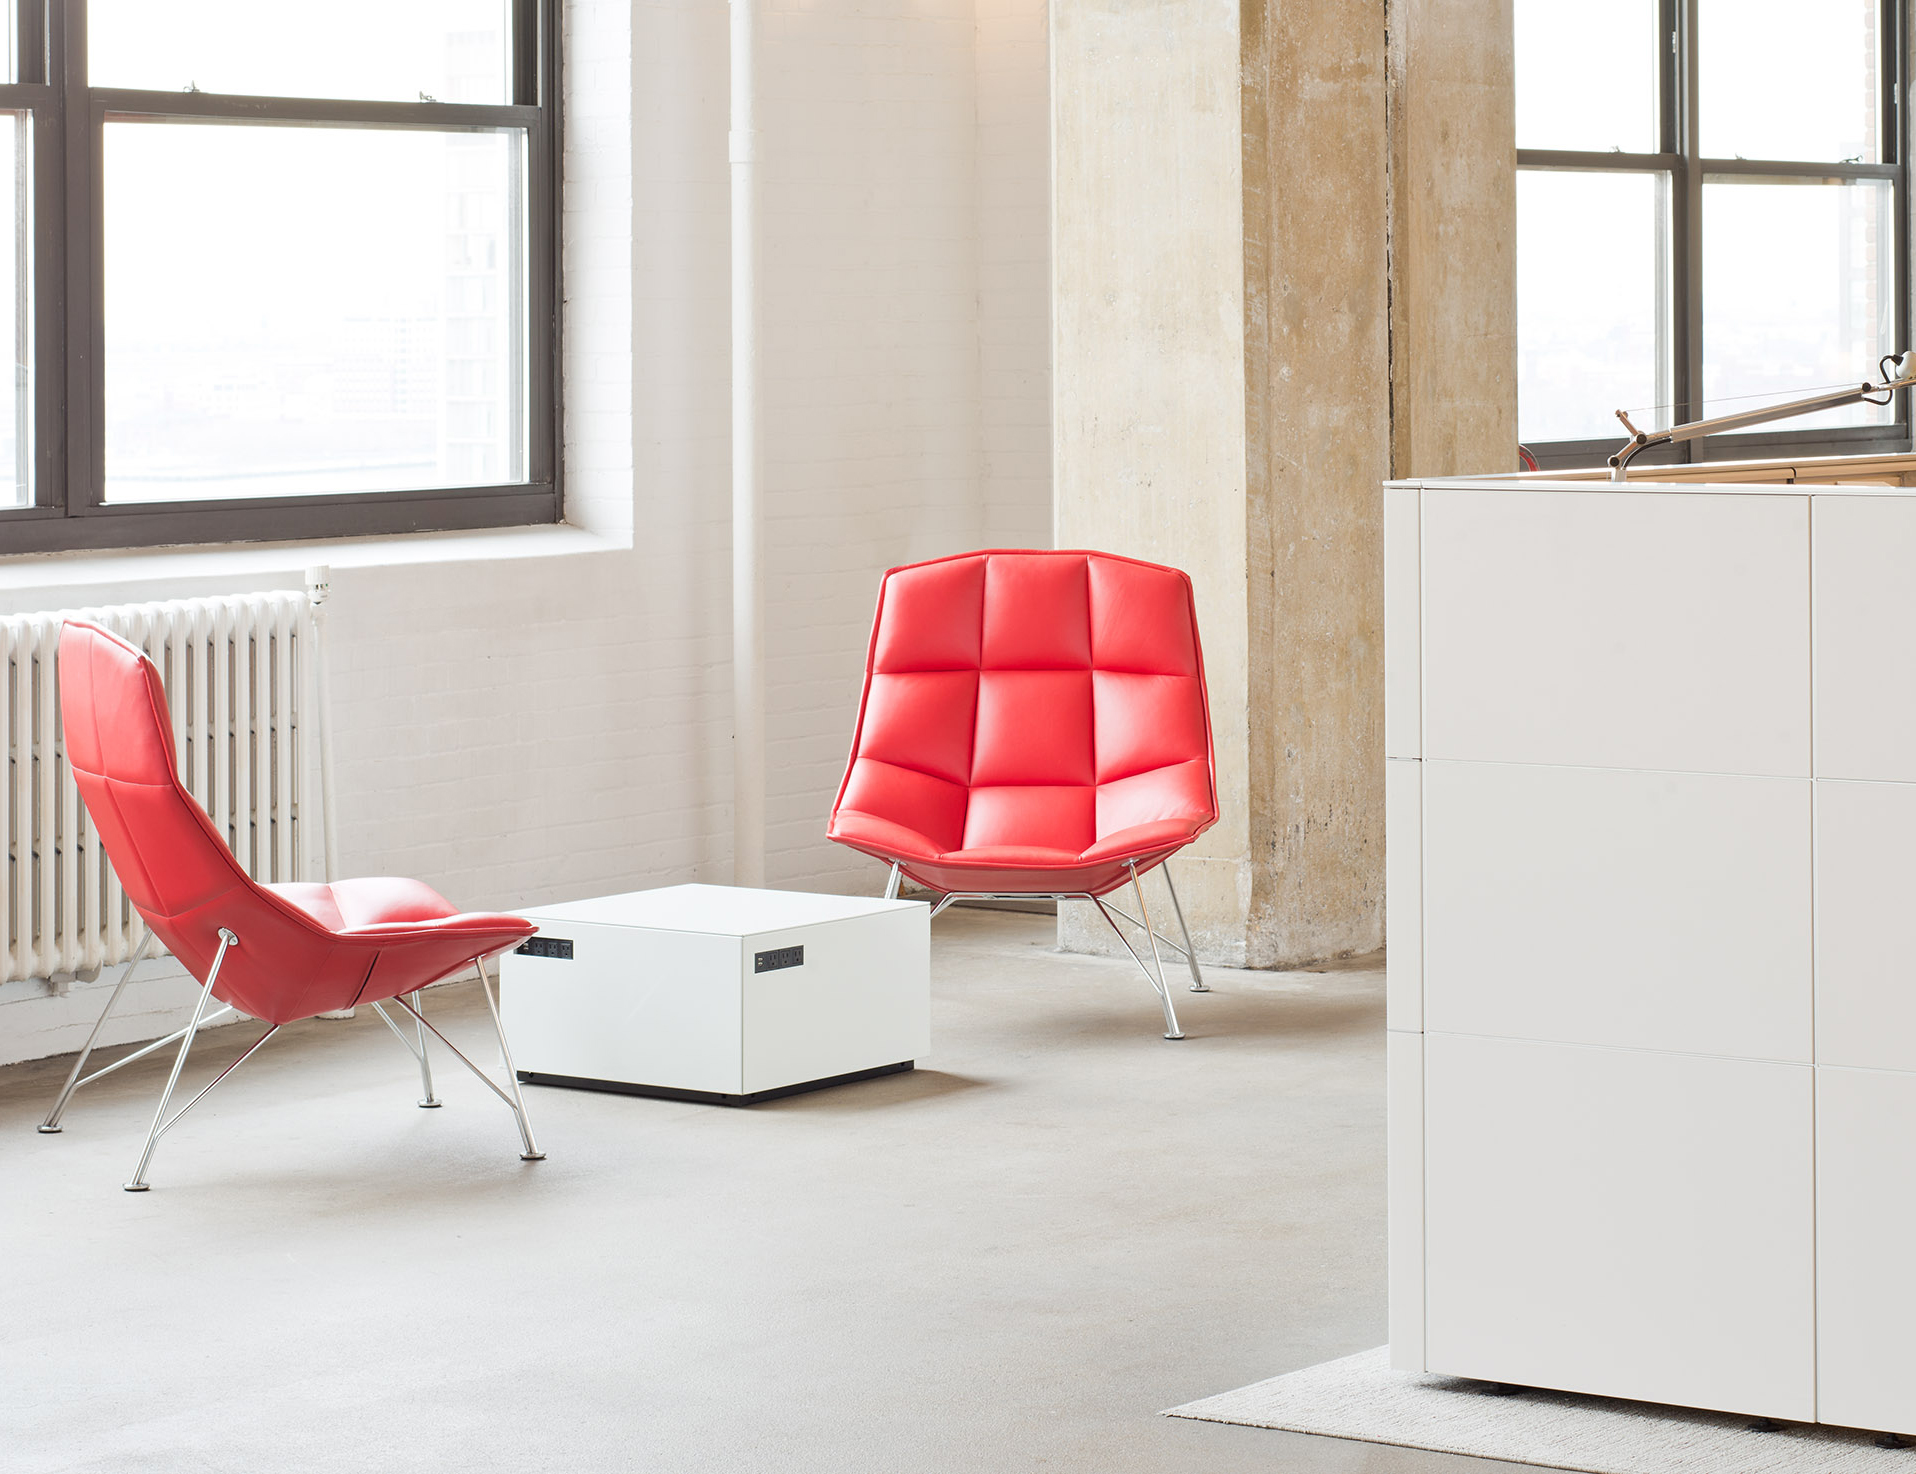 Activity Space Refuge Space Jehs+Laub Lounge Chair and Power Cube